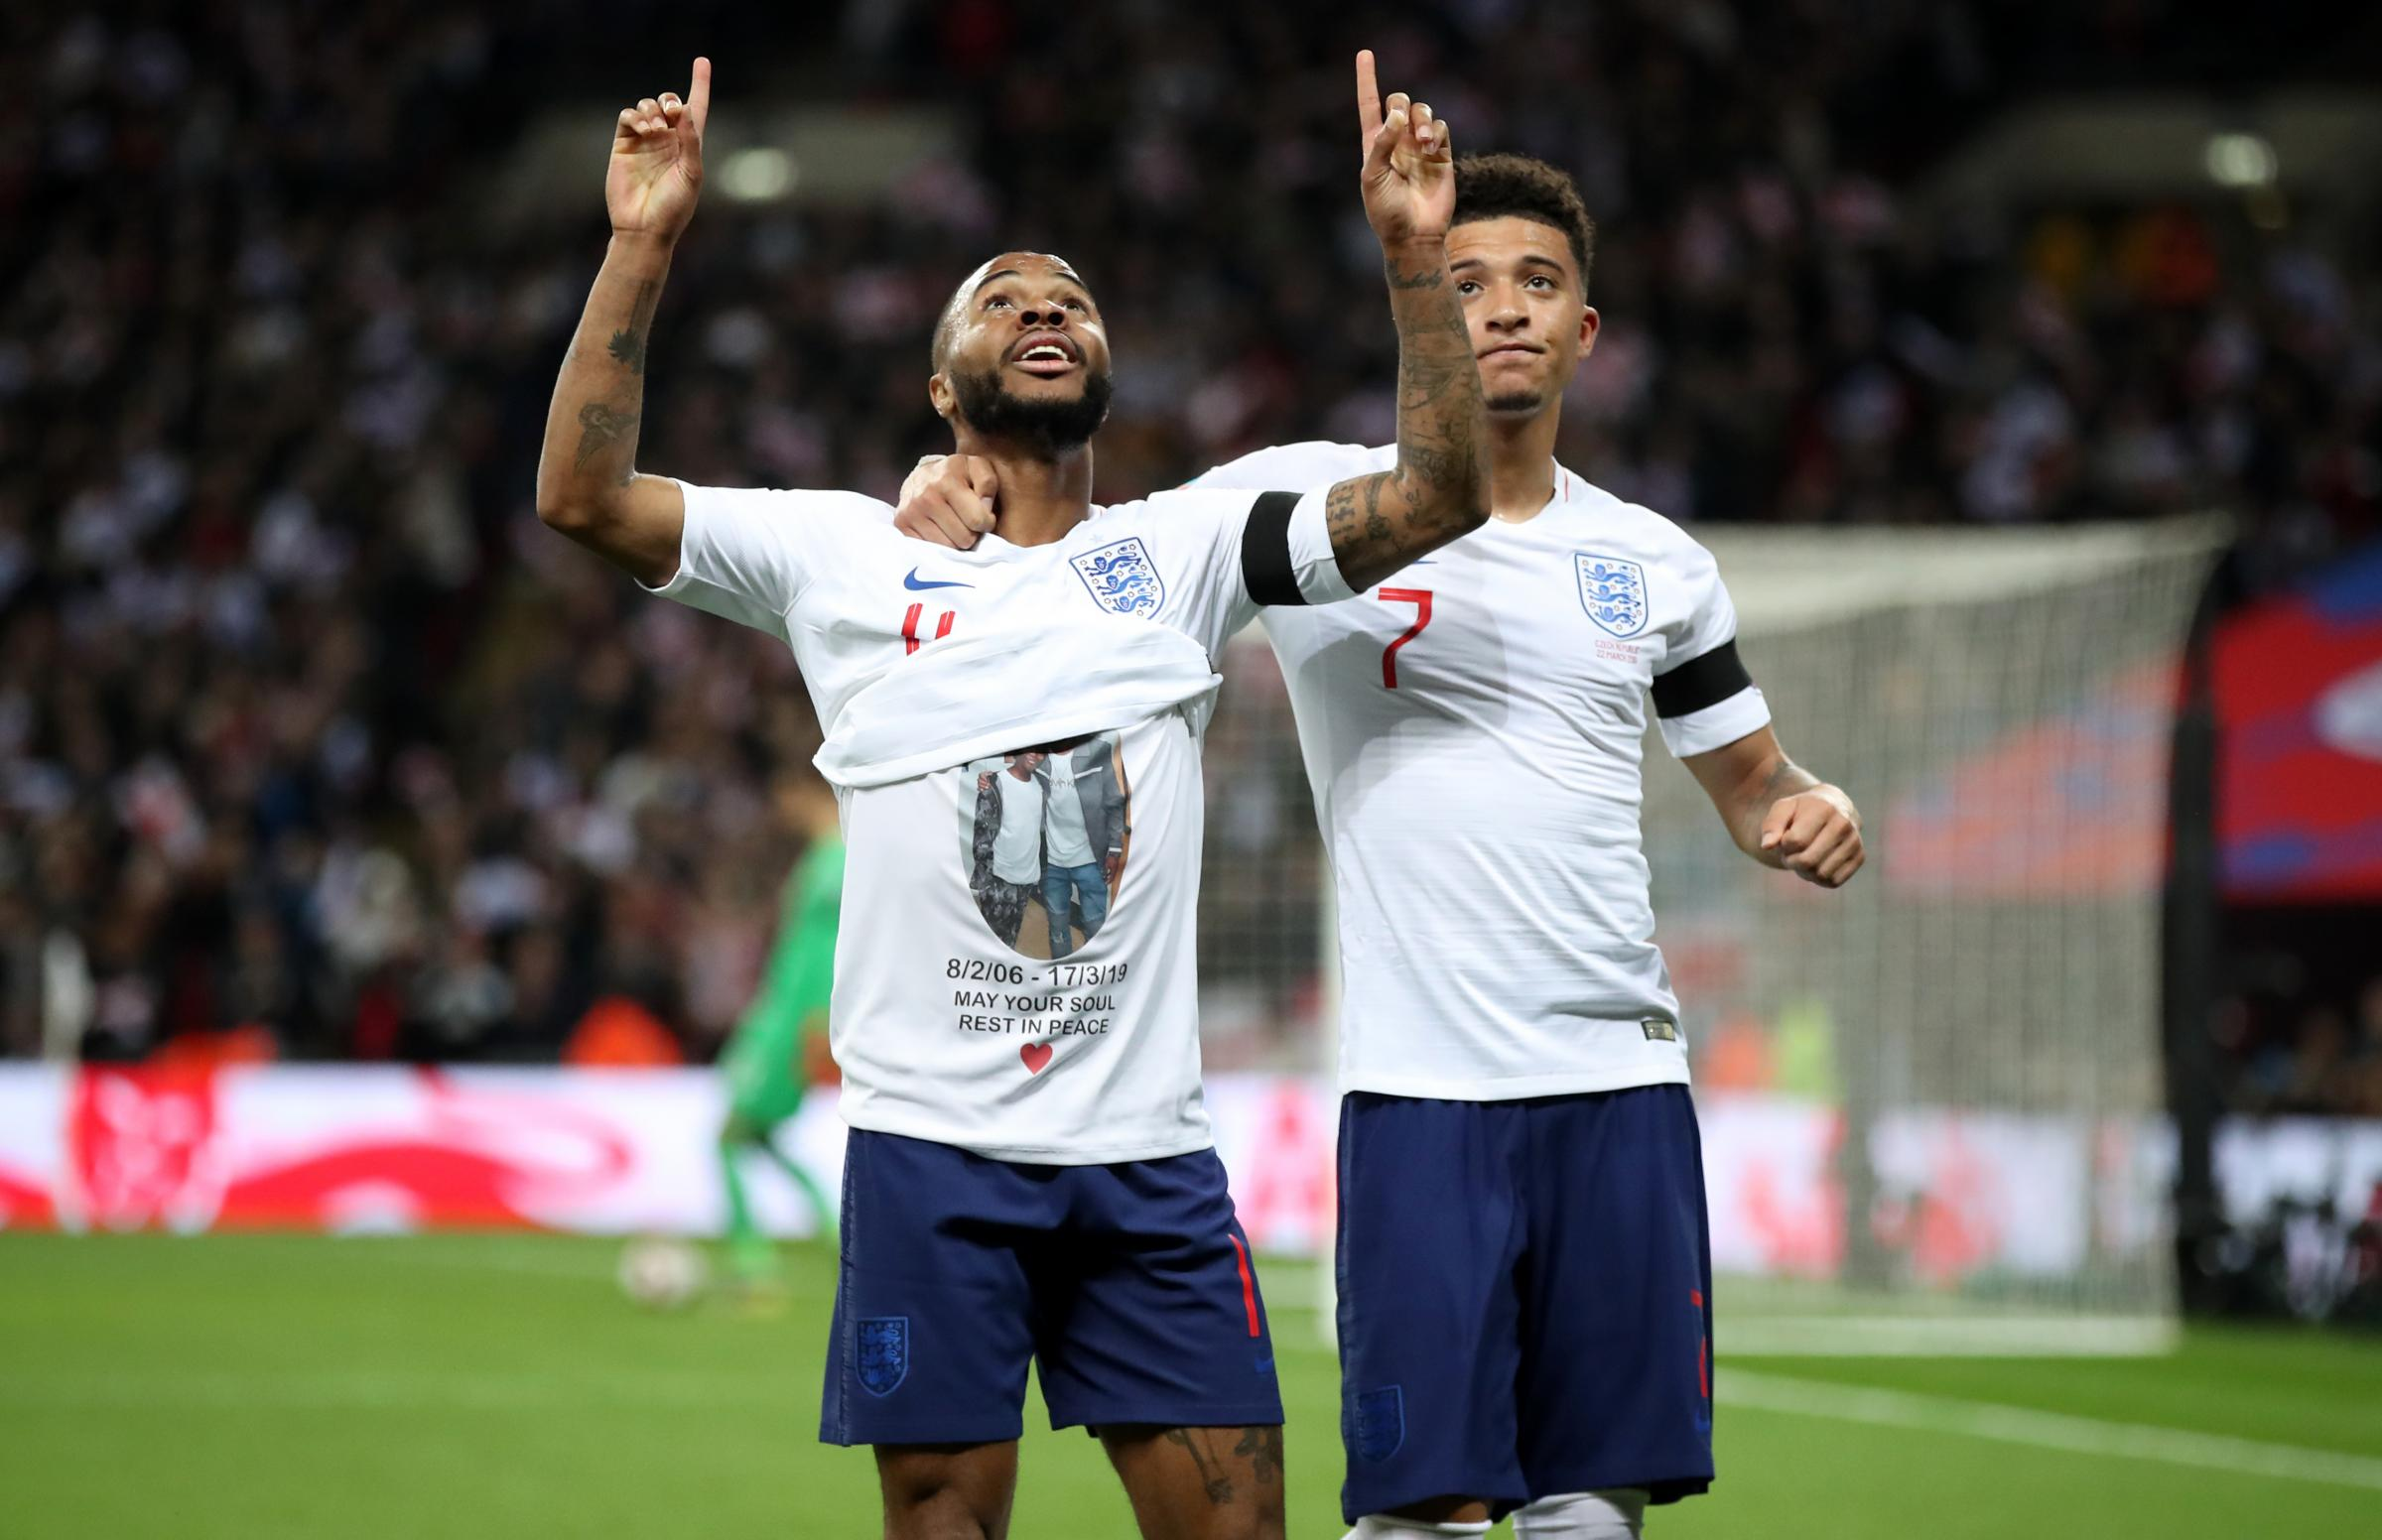 England's Raheem Sterling celebrates scoring his side's third goal of the game and shows a t-shirt in memory of former Crystal Palace youth player Damary Dawkins during the UEFA Euro 2020 Qualifying,   (Photo credit : Nick Potts/PA Wire. )